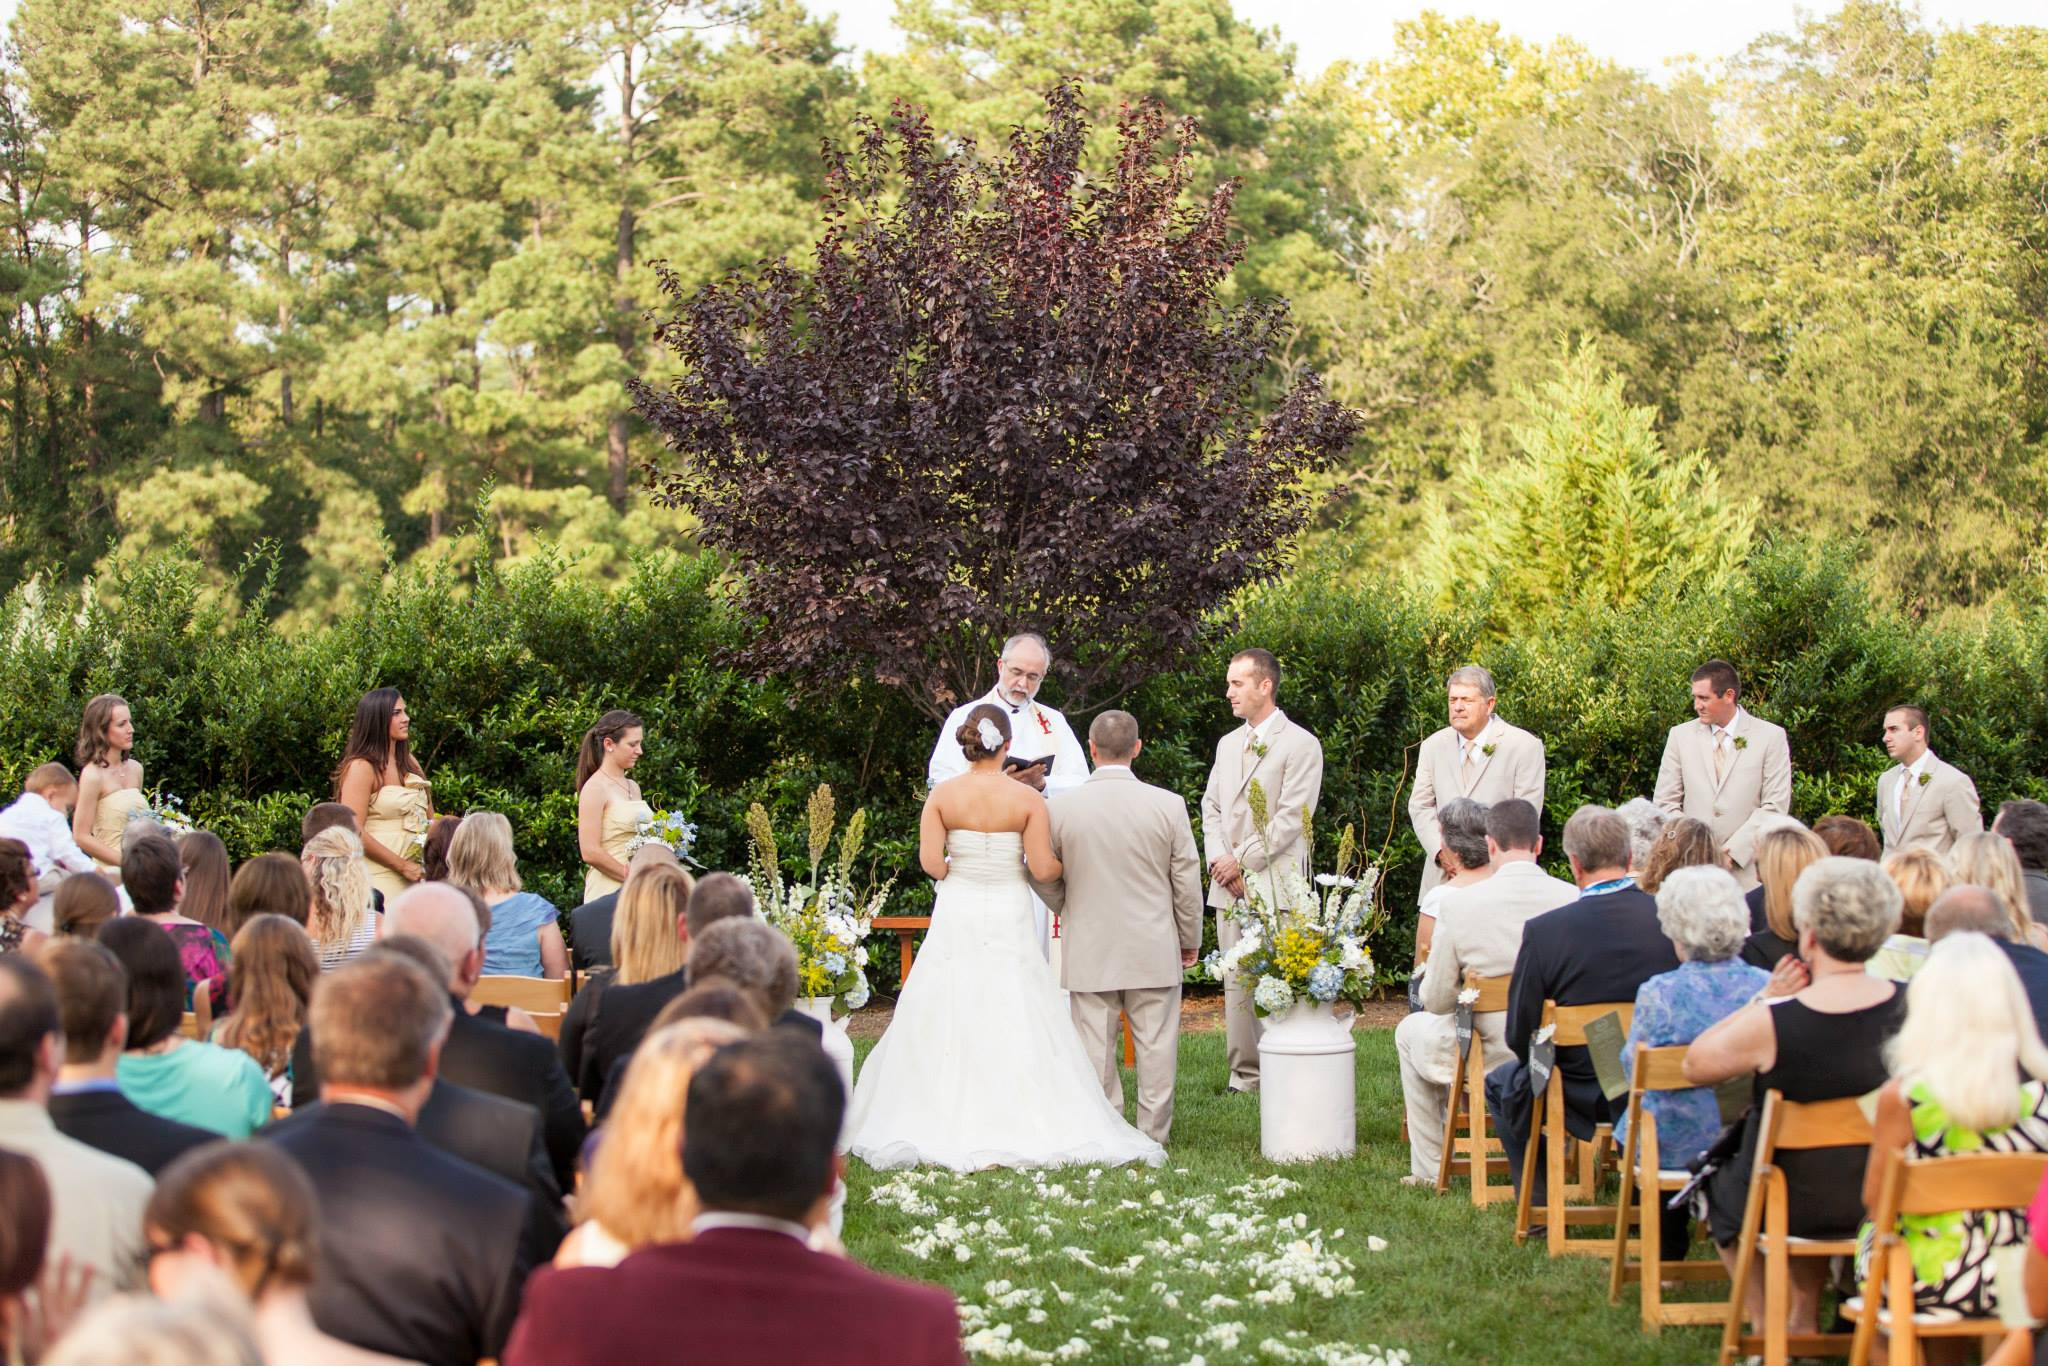 Outdoor Wedding Venue Photo Gallery: Raleigh NC Outdoor Wedding Venue